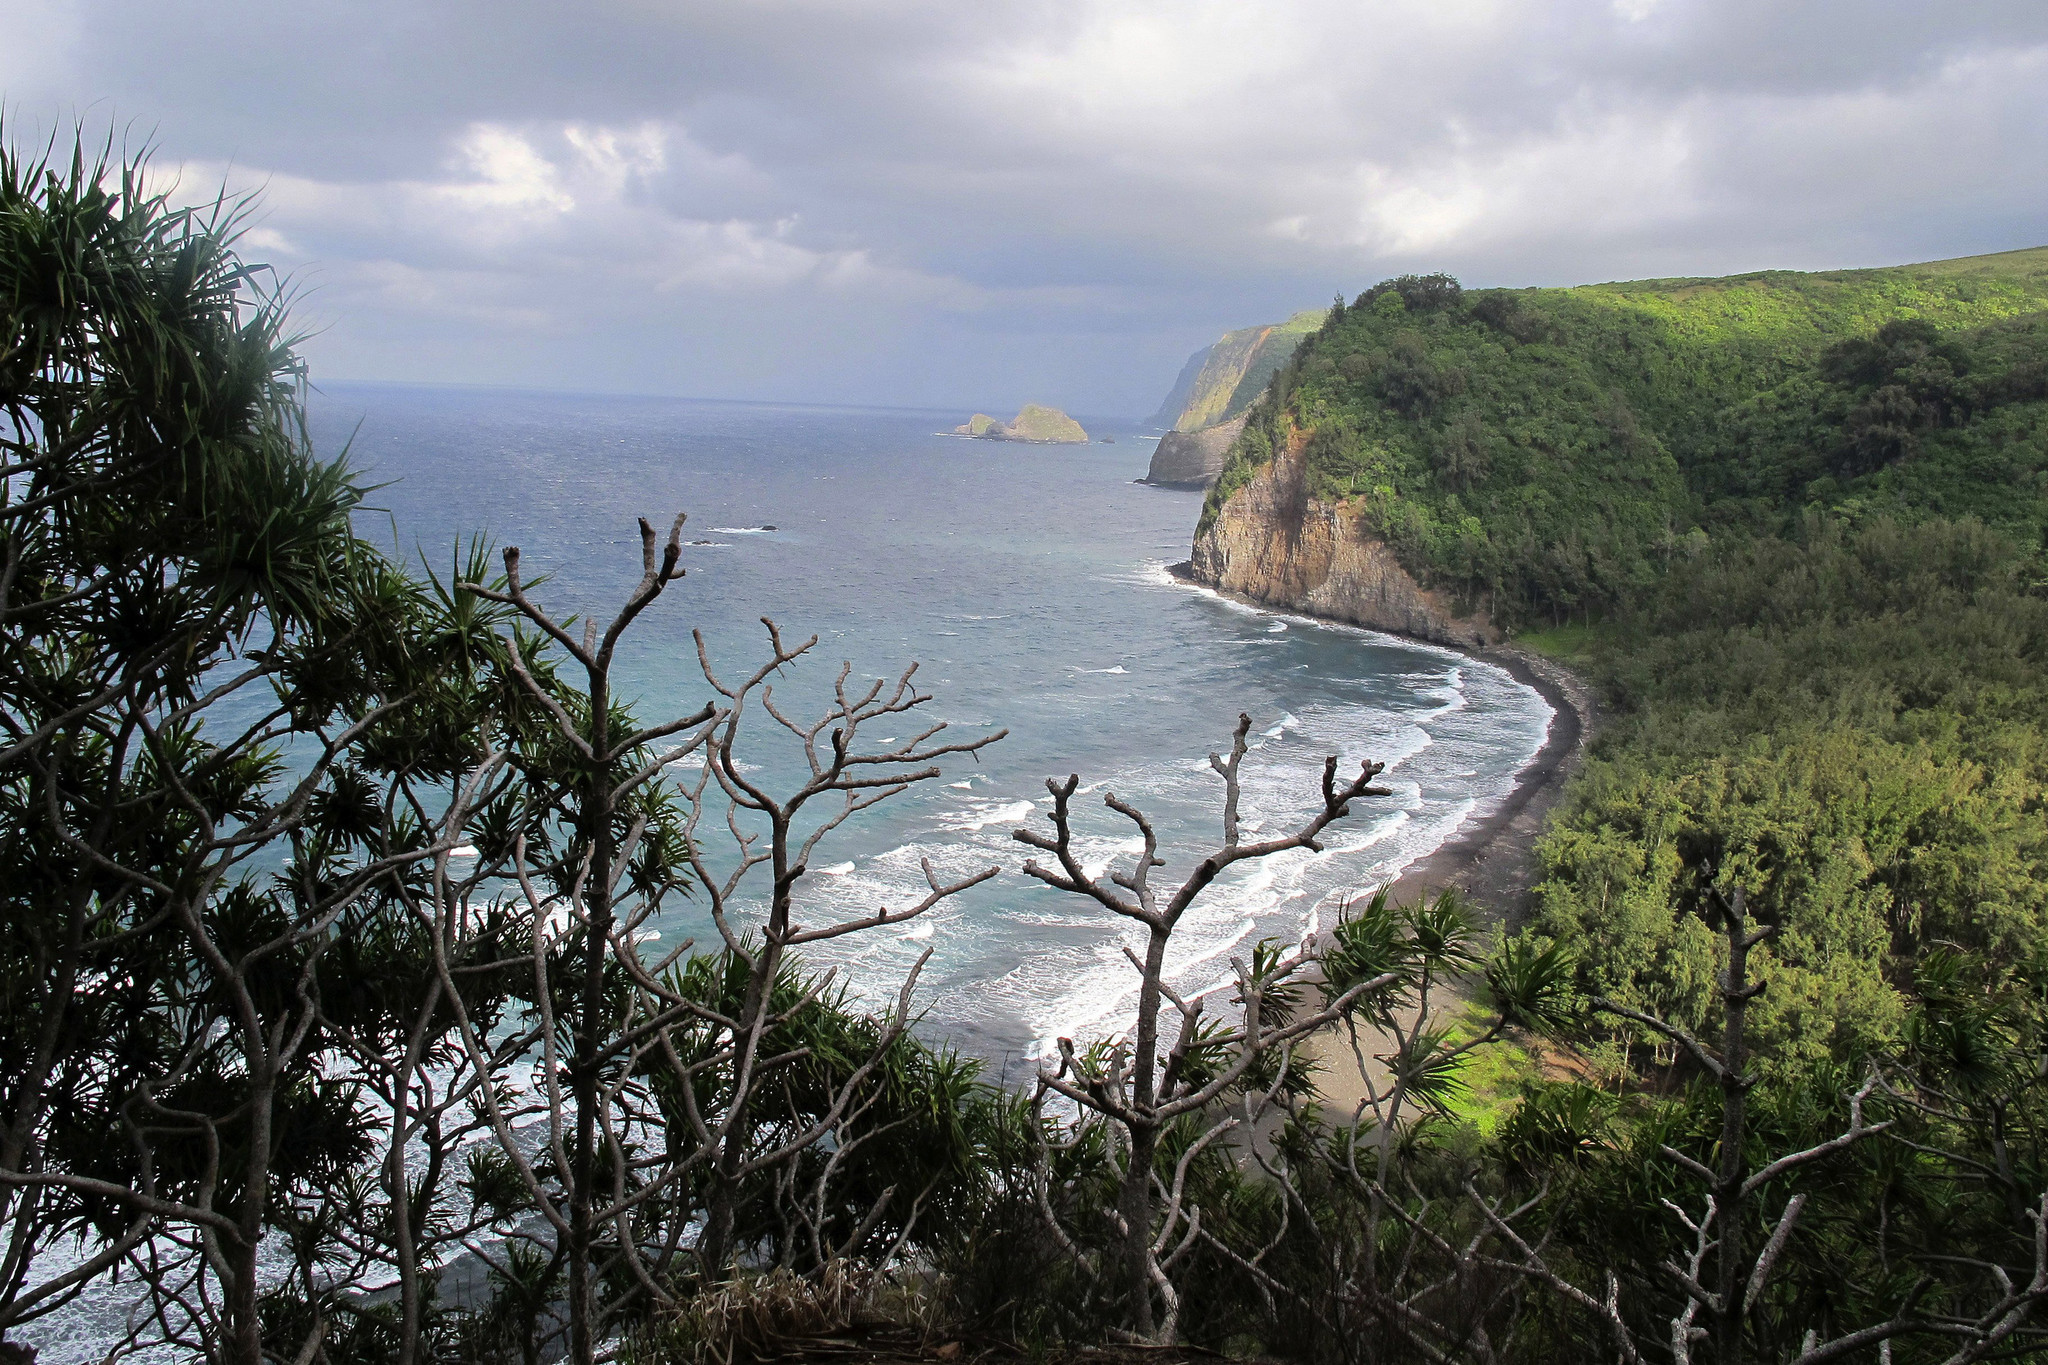 Pictures: Travel to North Kohala, Hawaii - Travel to North Kohala, Hawaii